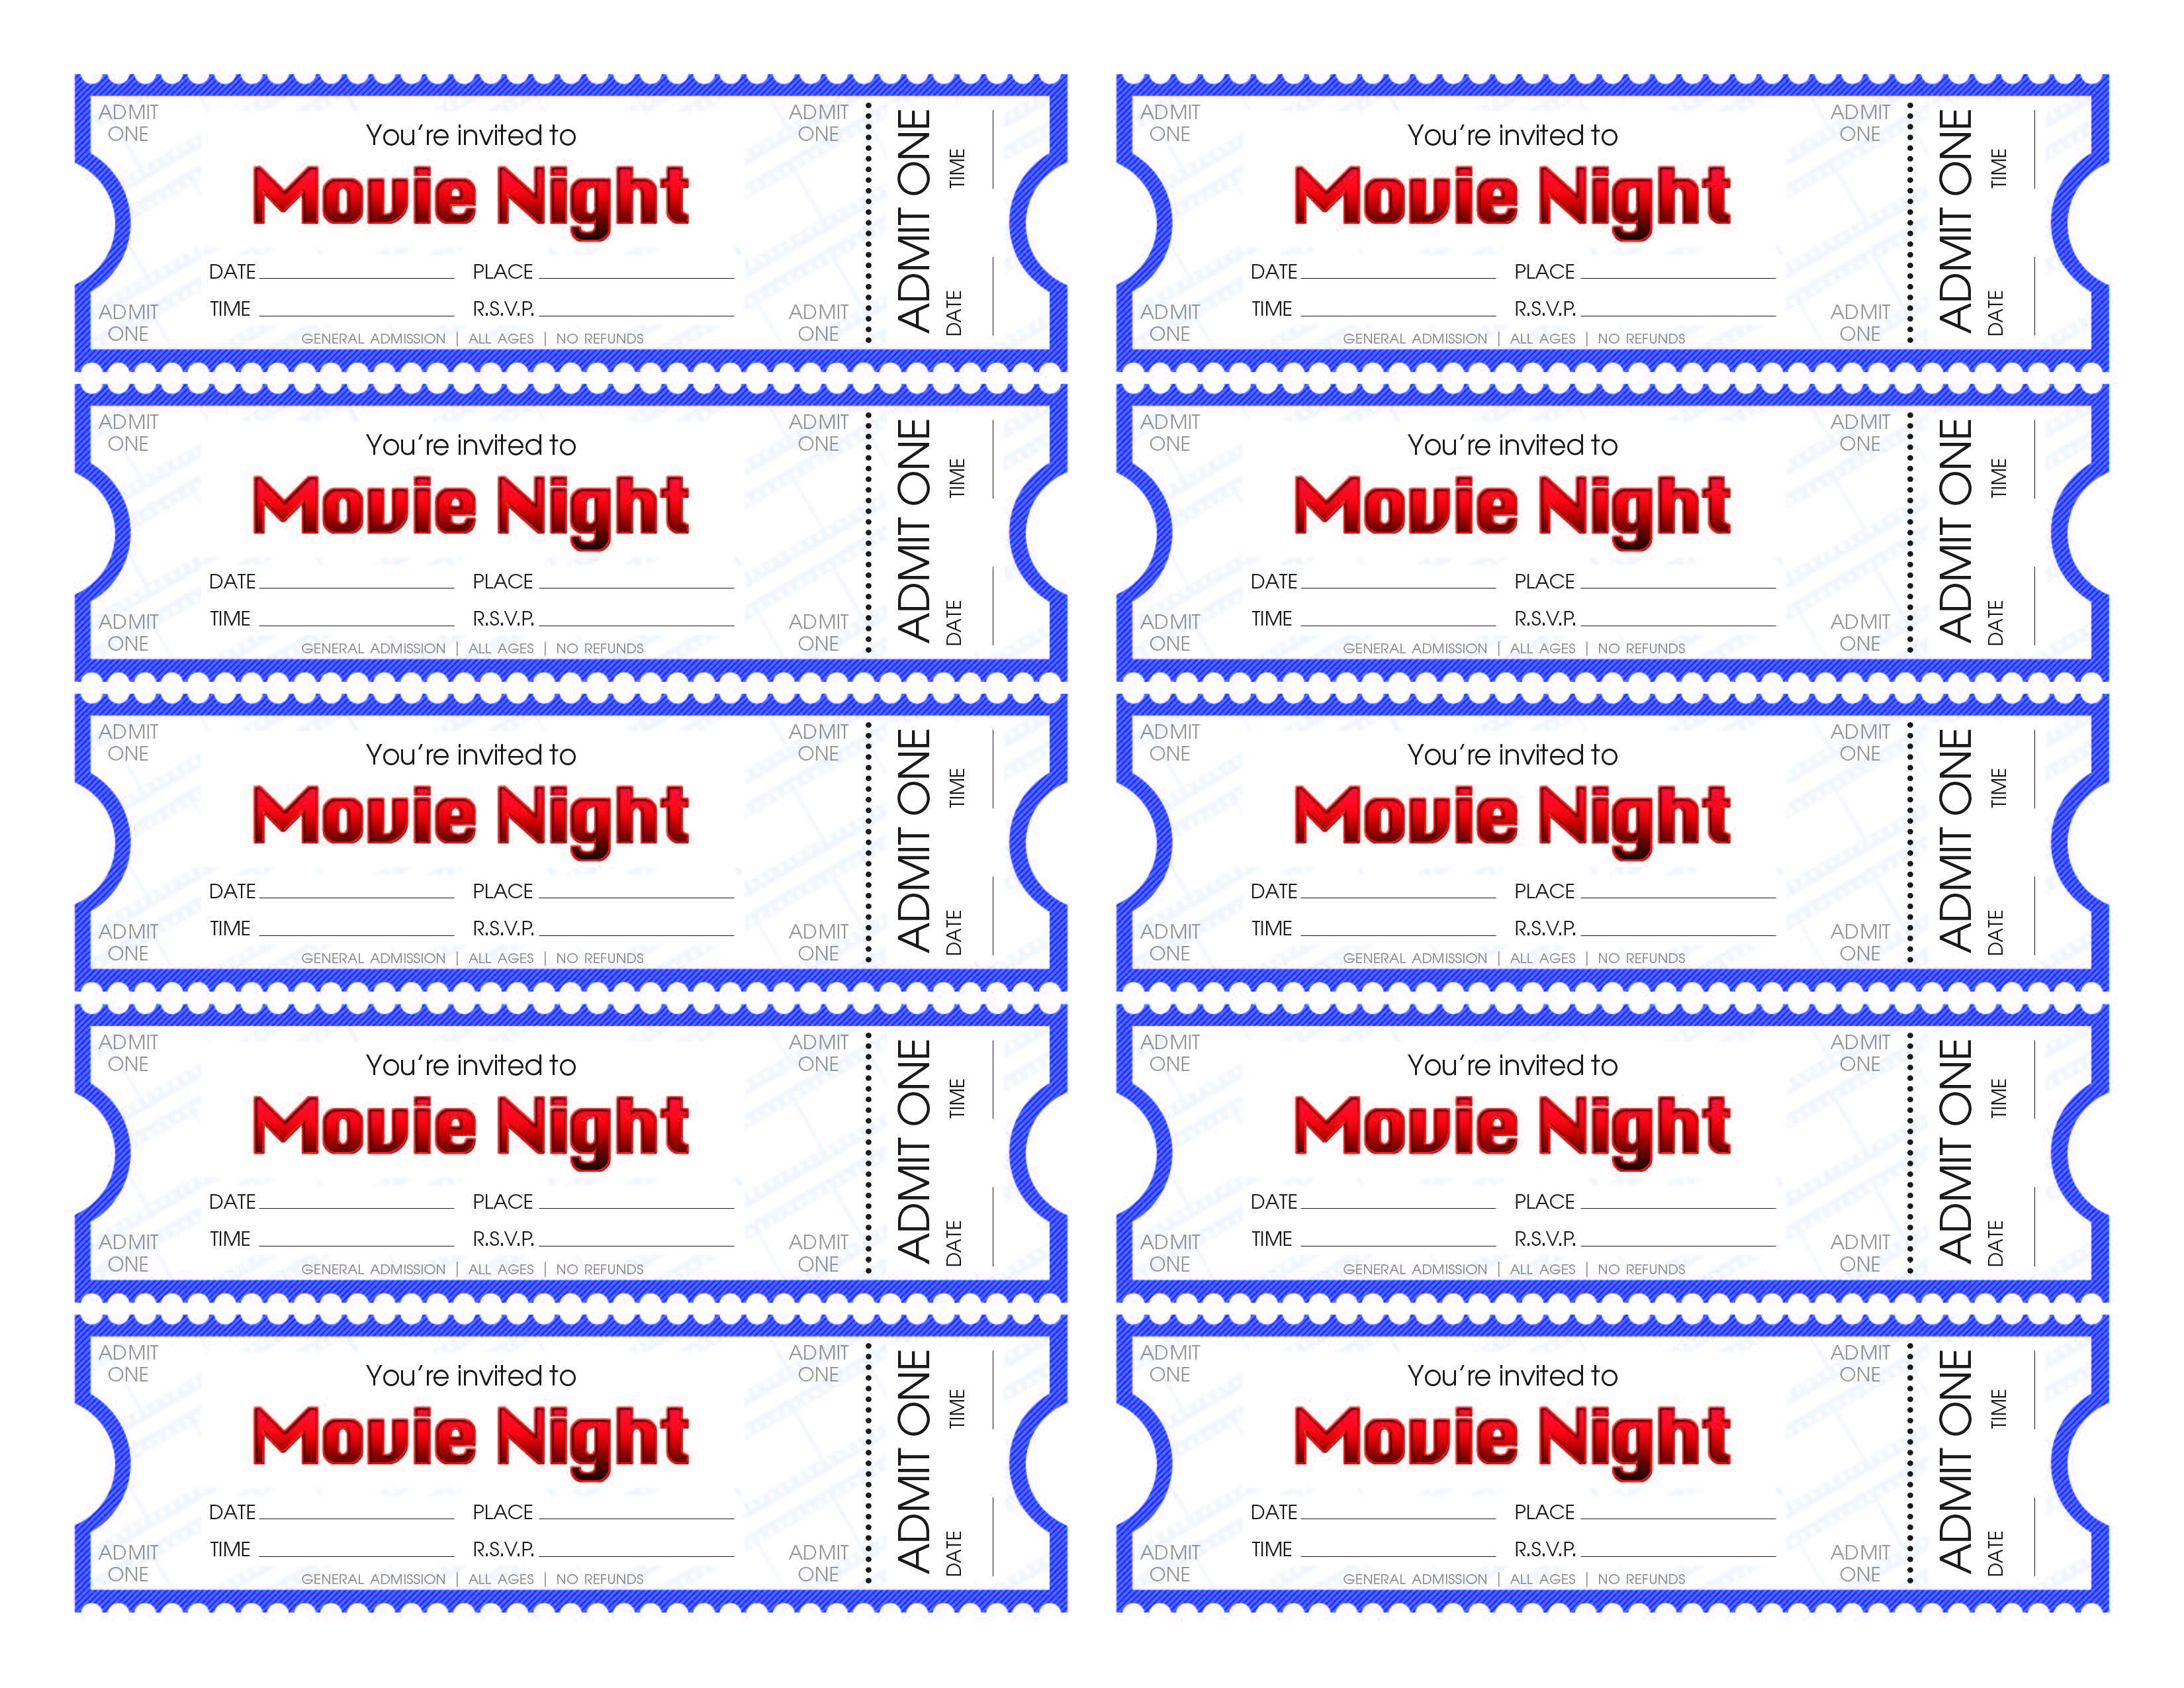 Download and print our movie ticket template to make your movie night